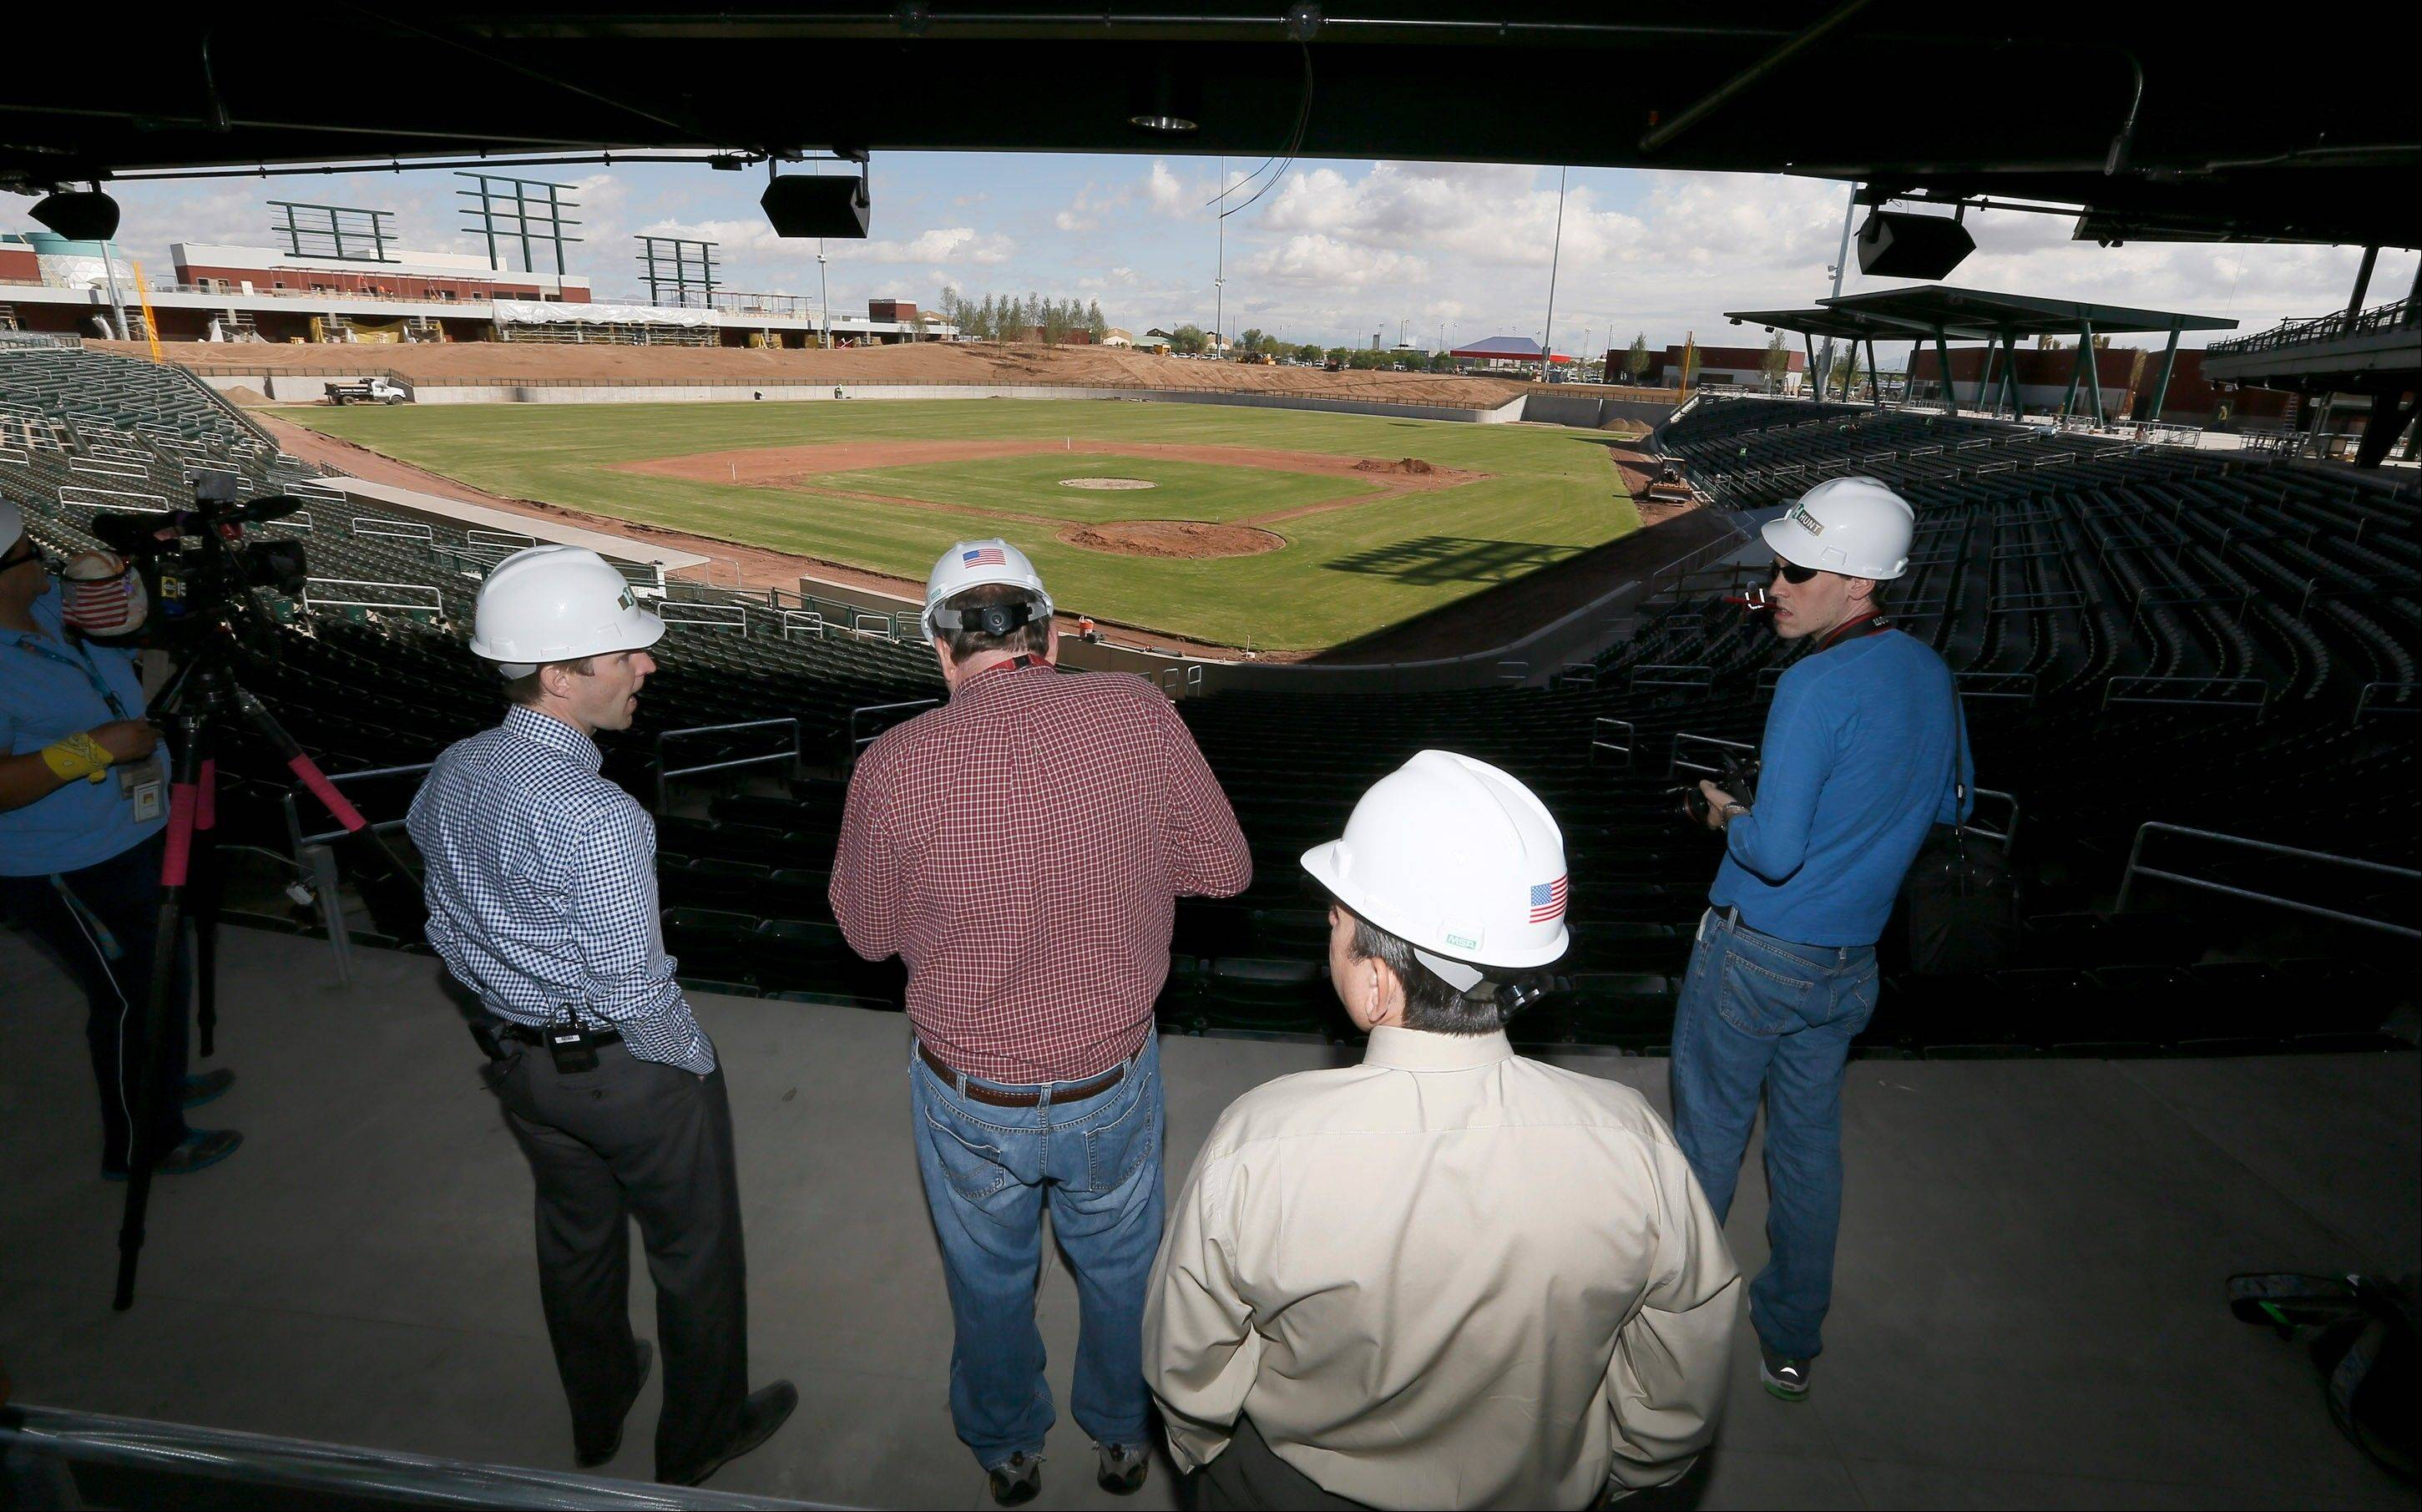 Justin Piper, left, Chicago Cubs general manager of spring training operations, shows members of the media the new stadium under construction at the team's new spring training facility on Thursday, Oct. 10, 2013, in Mesa, Ariz. The facility is scheduled to be open for next year's spring training.